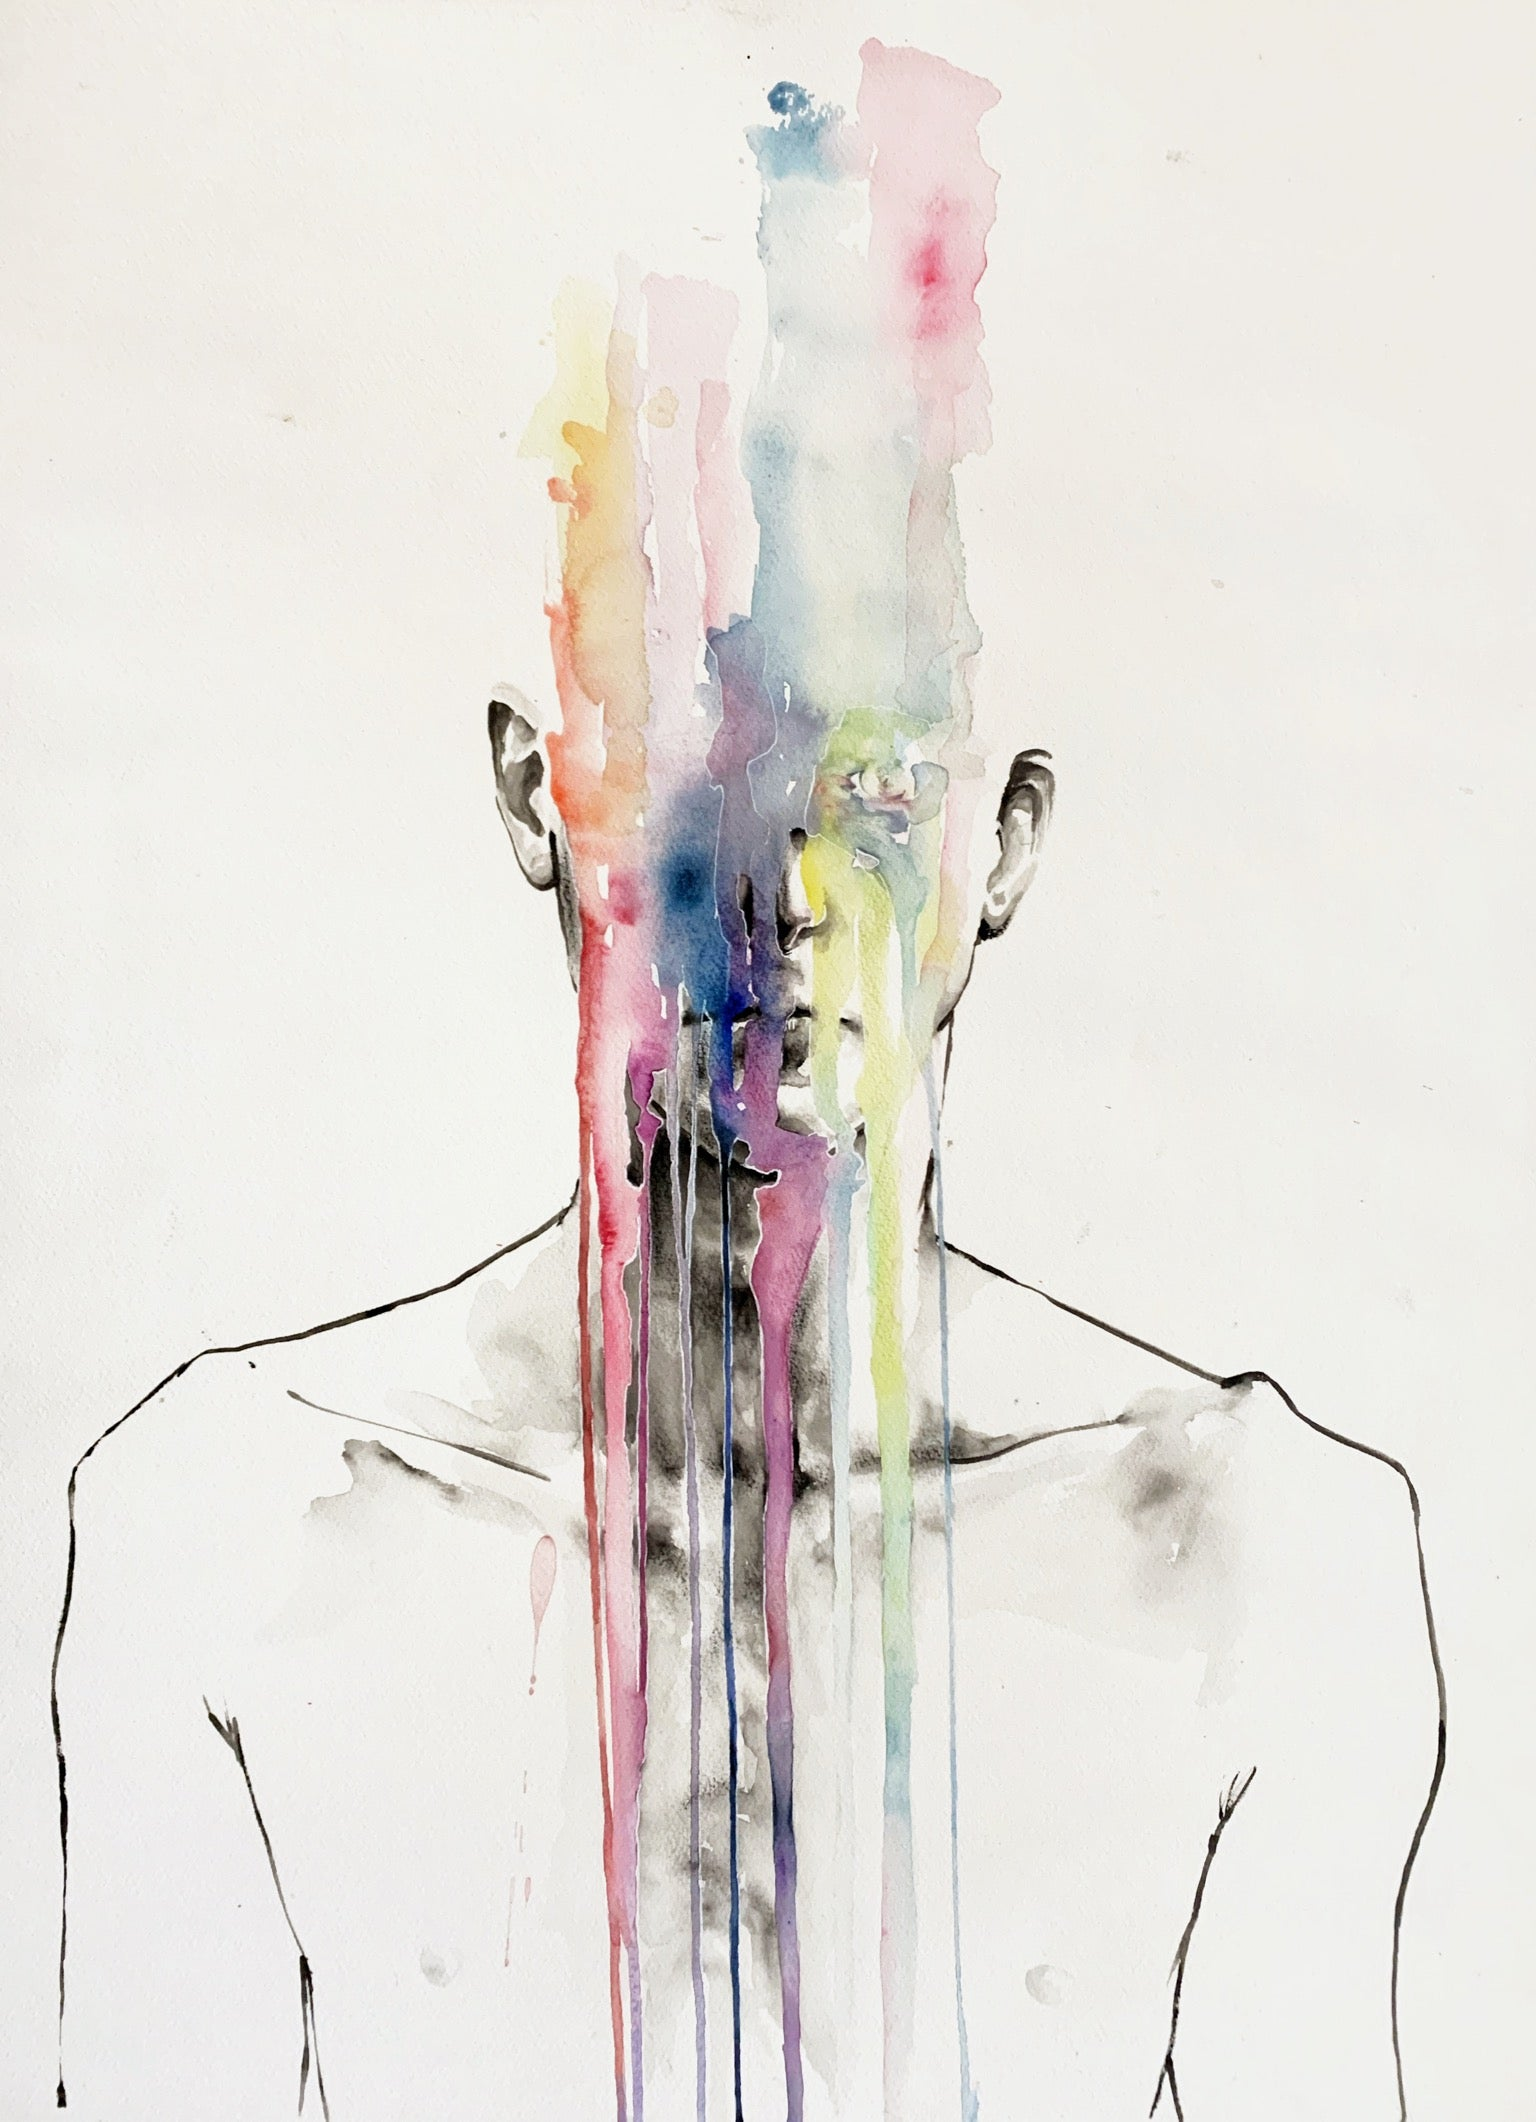 Agnes-Cecile all my art is on you but you still don't hear me